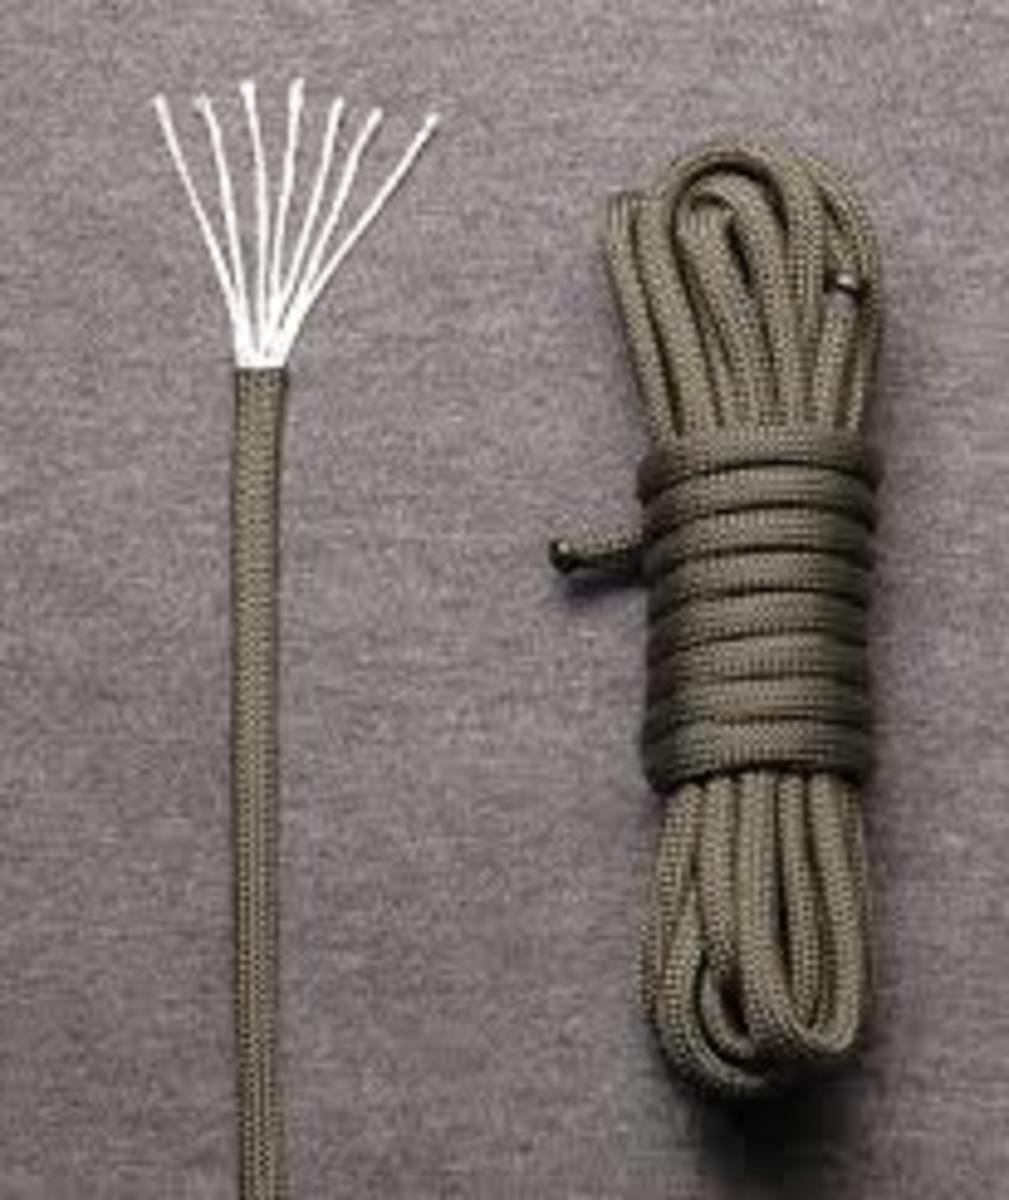 One of the main benefits of paracord is the inner strands. You can use them as much or more than the paracord itself.